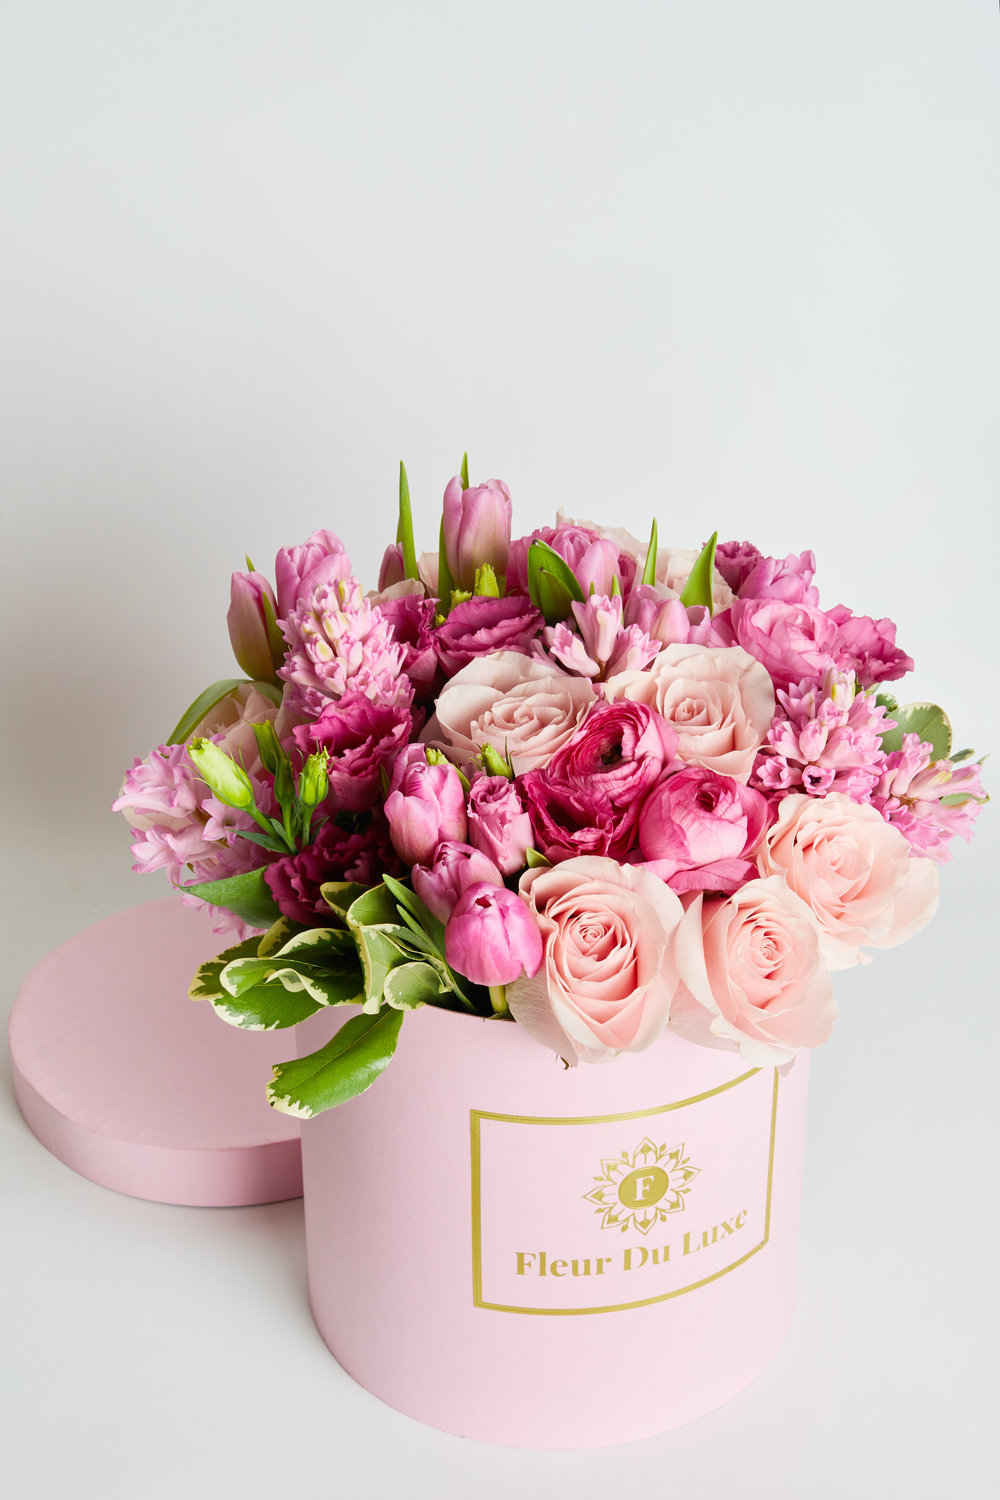 Round Box with Fresh cut flowers -